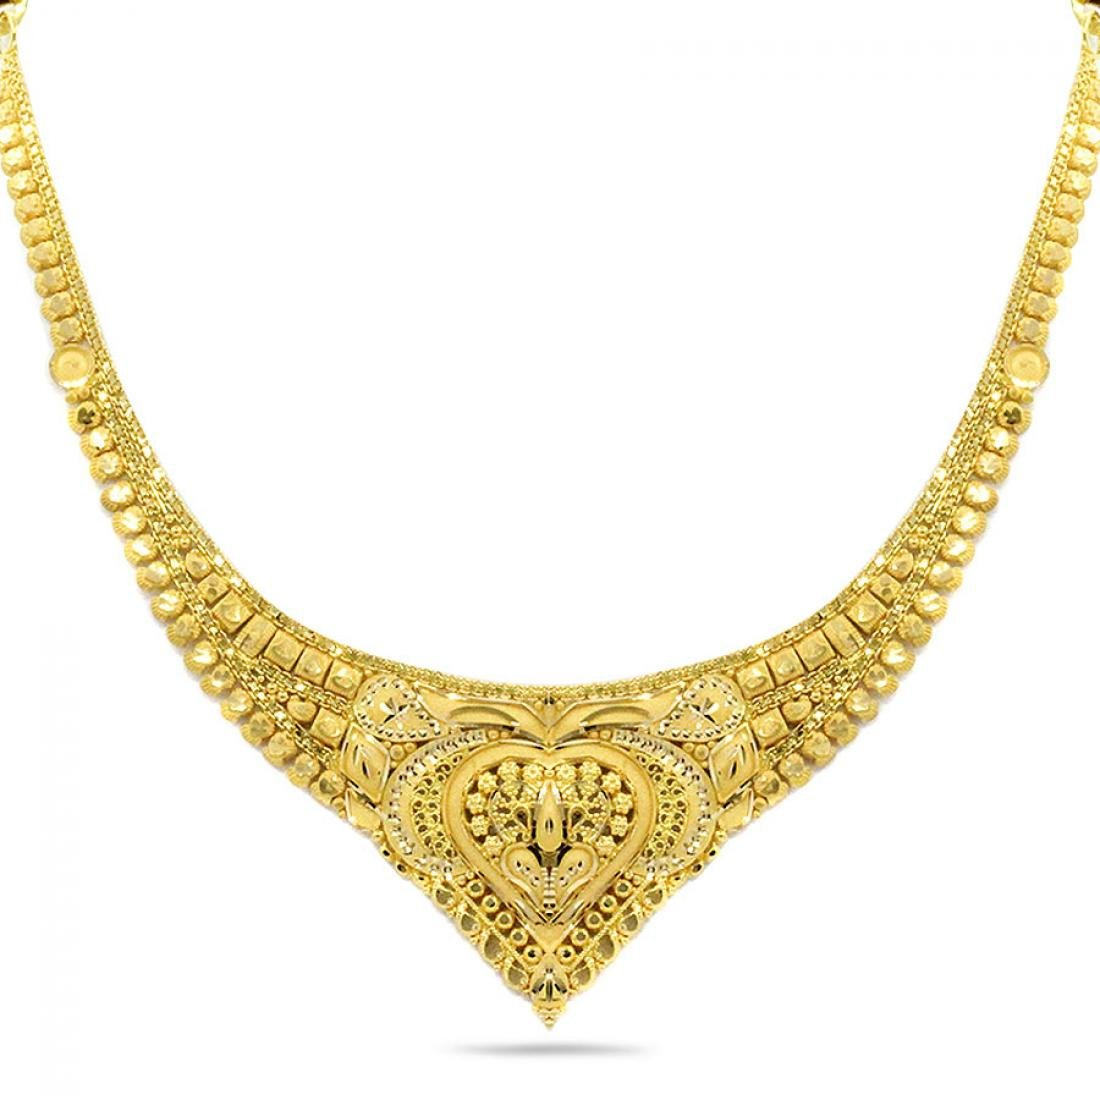 Buy Candere By Kalyan Jewellers 22k 916 Yellow Gold Necklace For Women At Amazon In